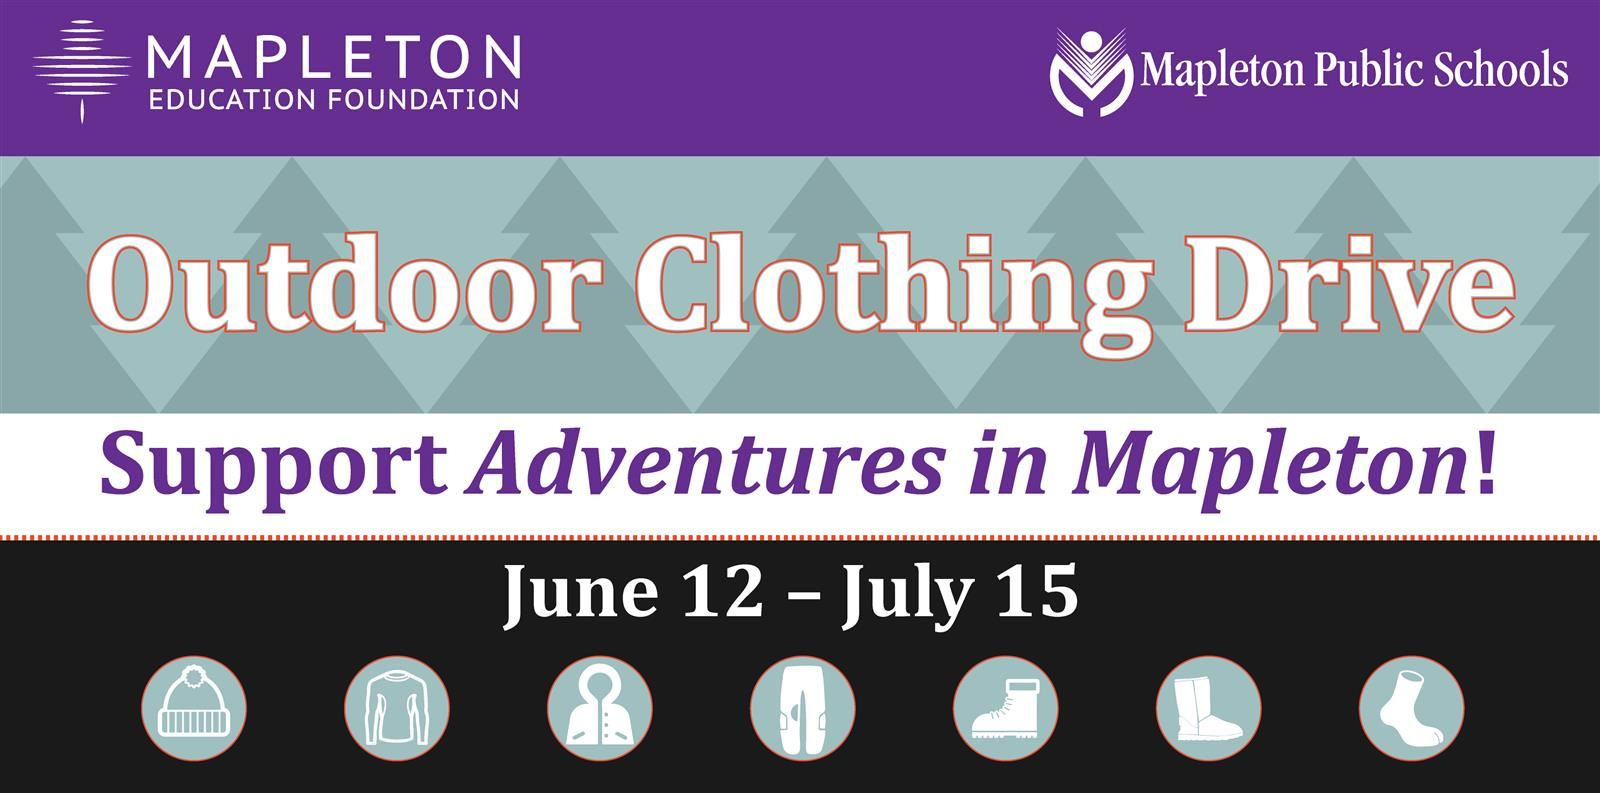 a2ff0a272052 Mapleton's Outdoor Clothing Drive, June 12 through July 15